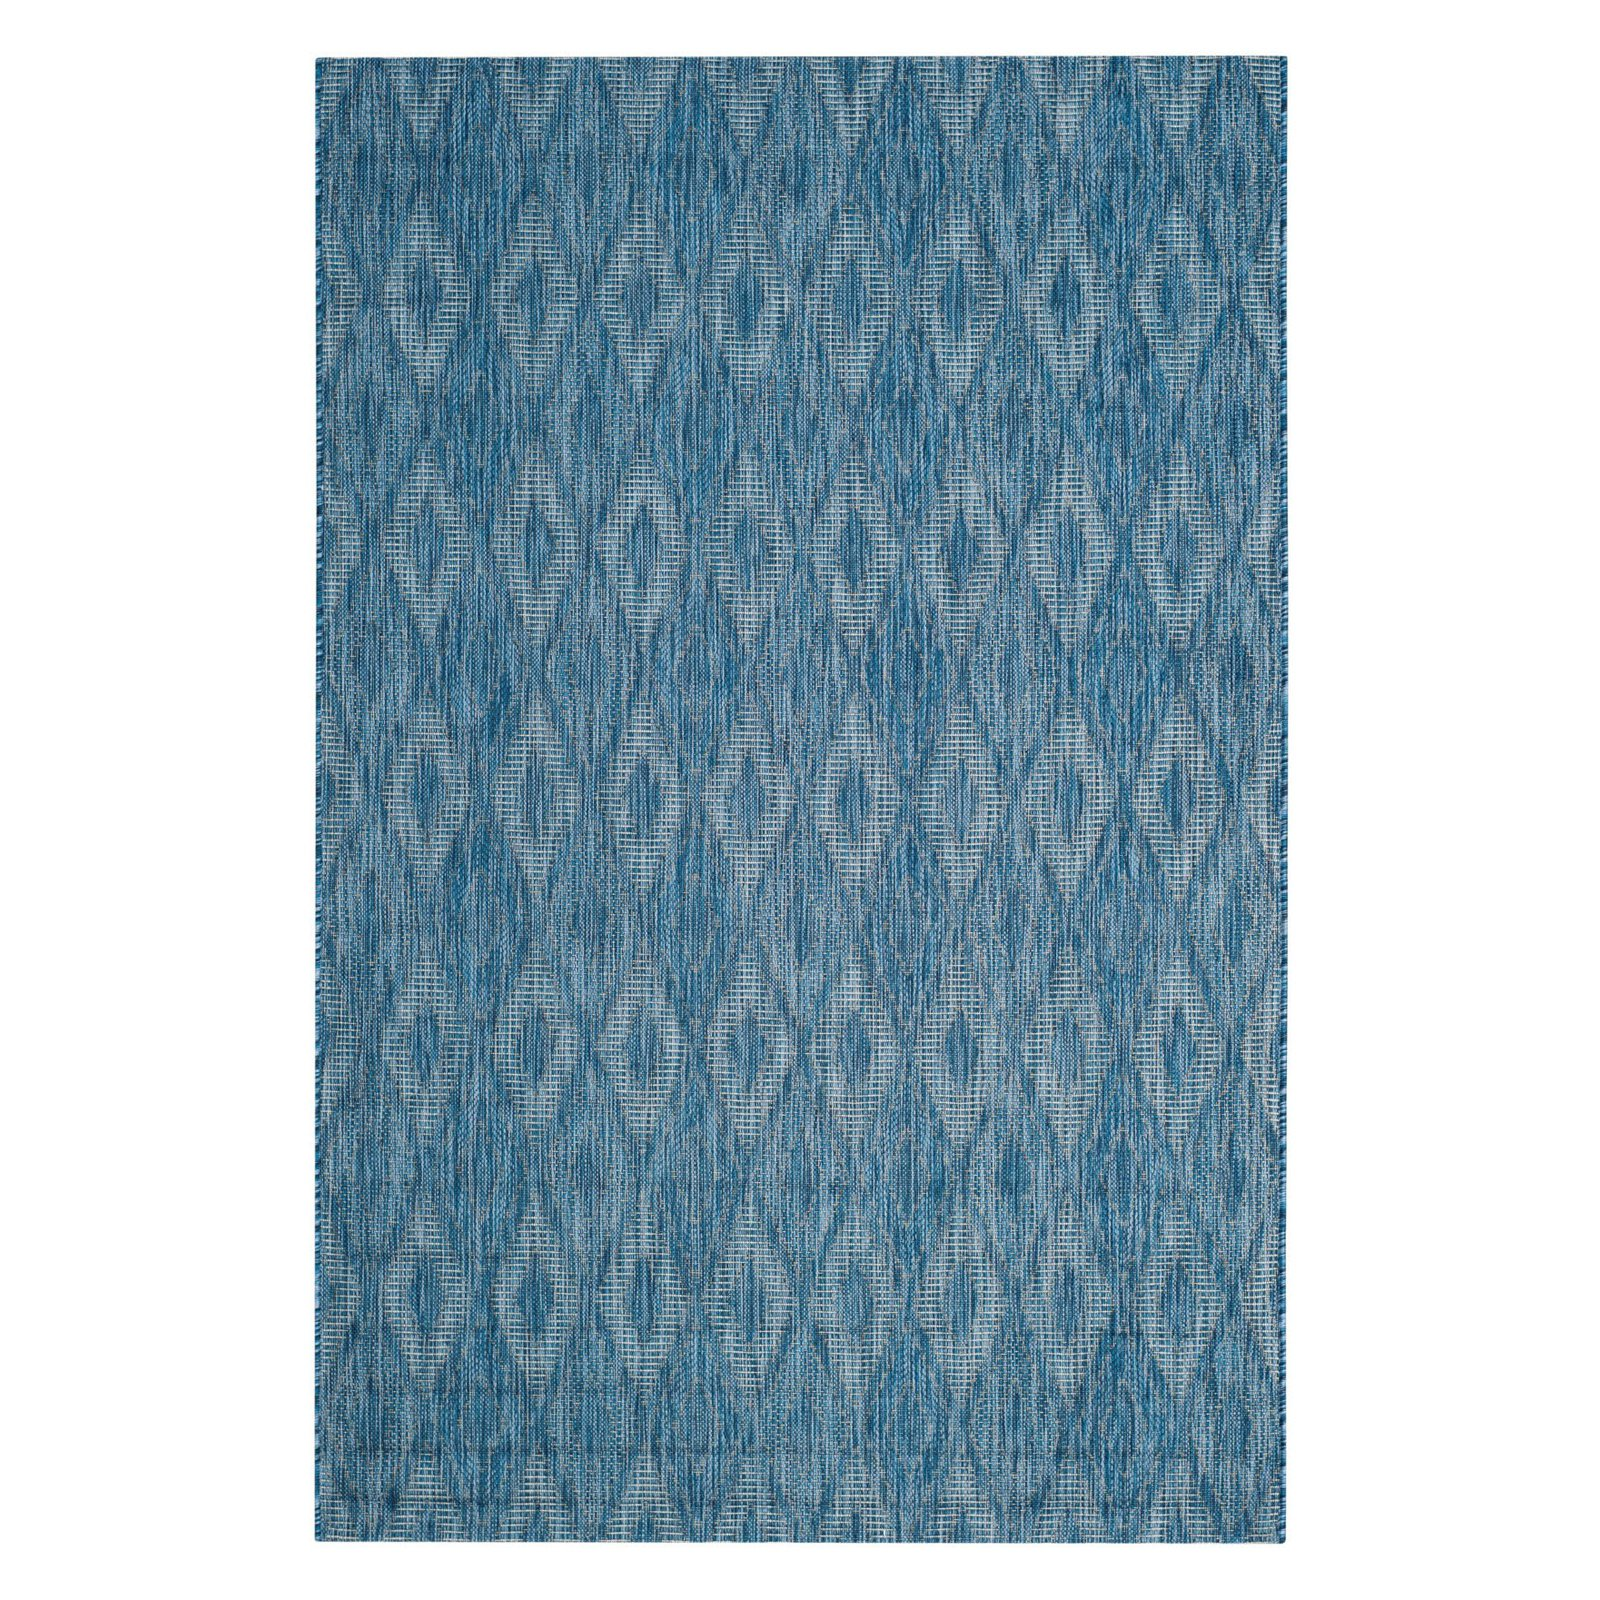 Safavieh Courtyard Teodor Geometric Diamonds Indoor/Outdoor Area Rug